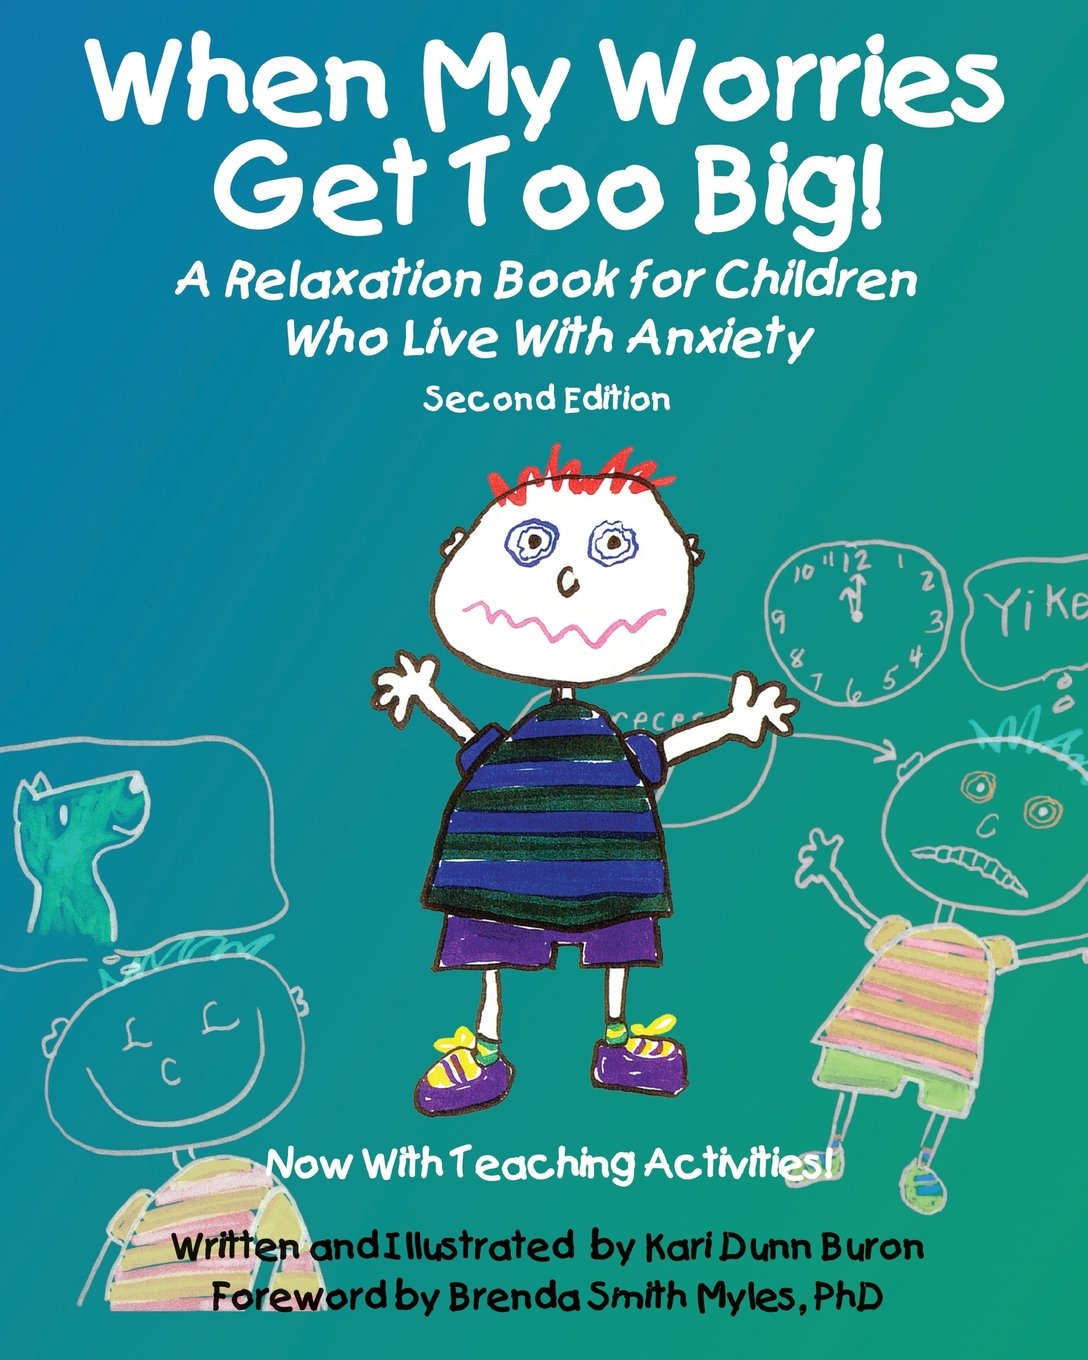 When My Worries Get Too Big! : A Relaxation Book for Children Who Live with Anxiety